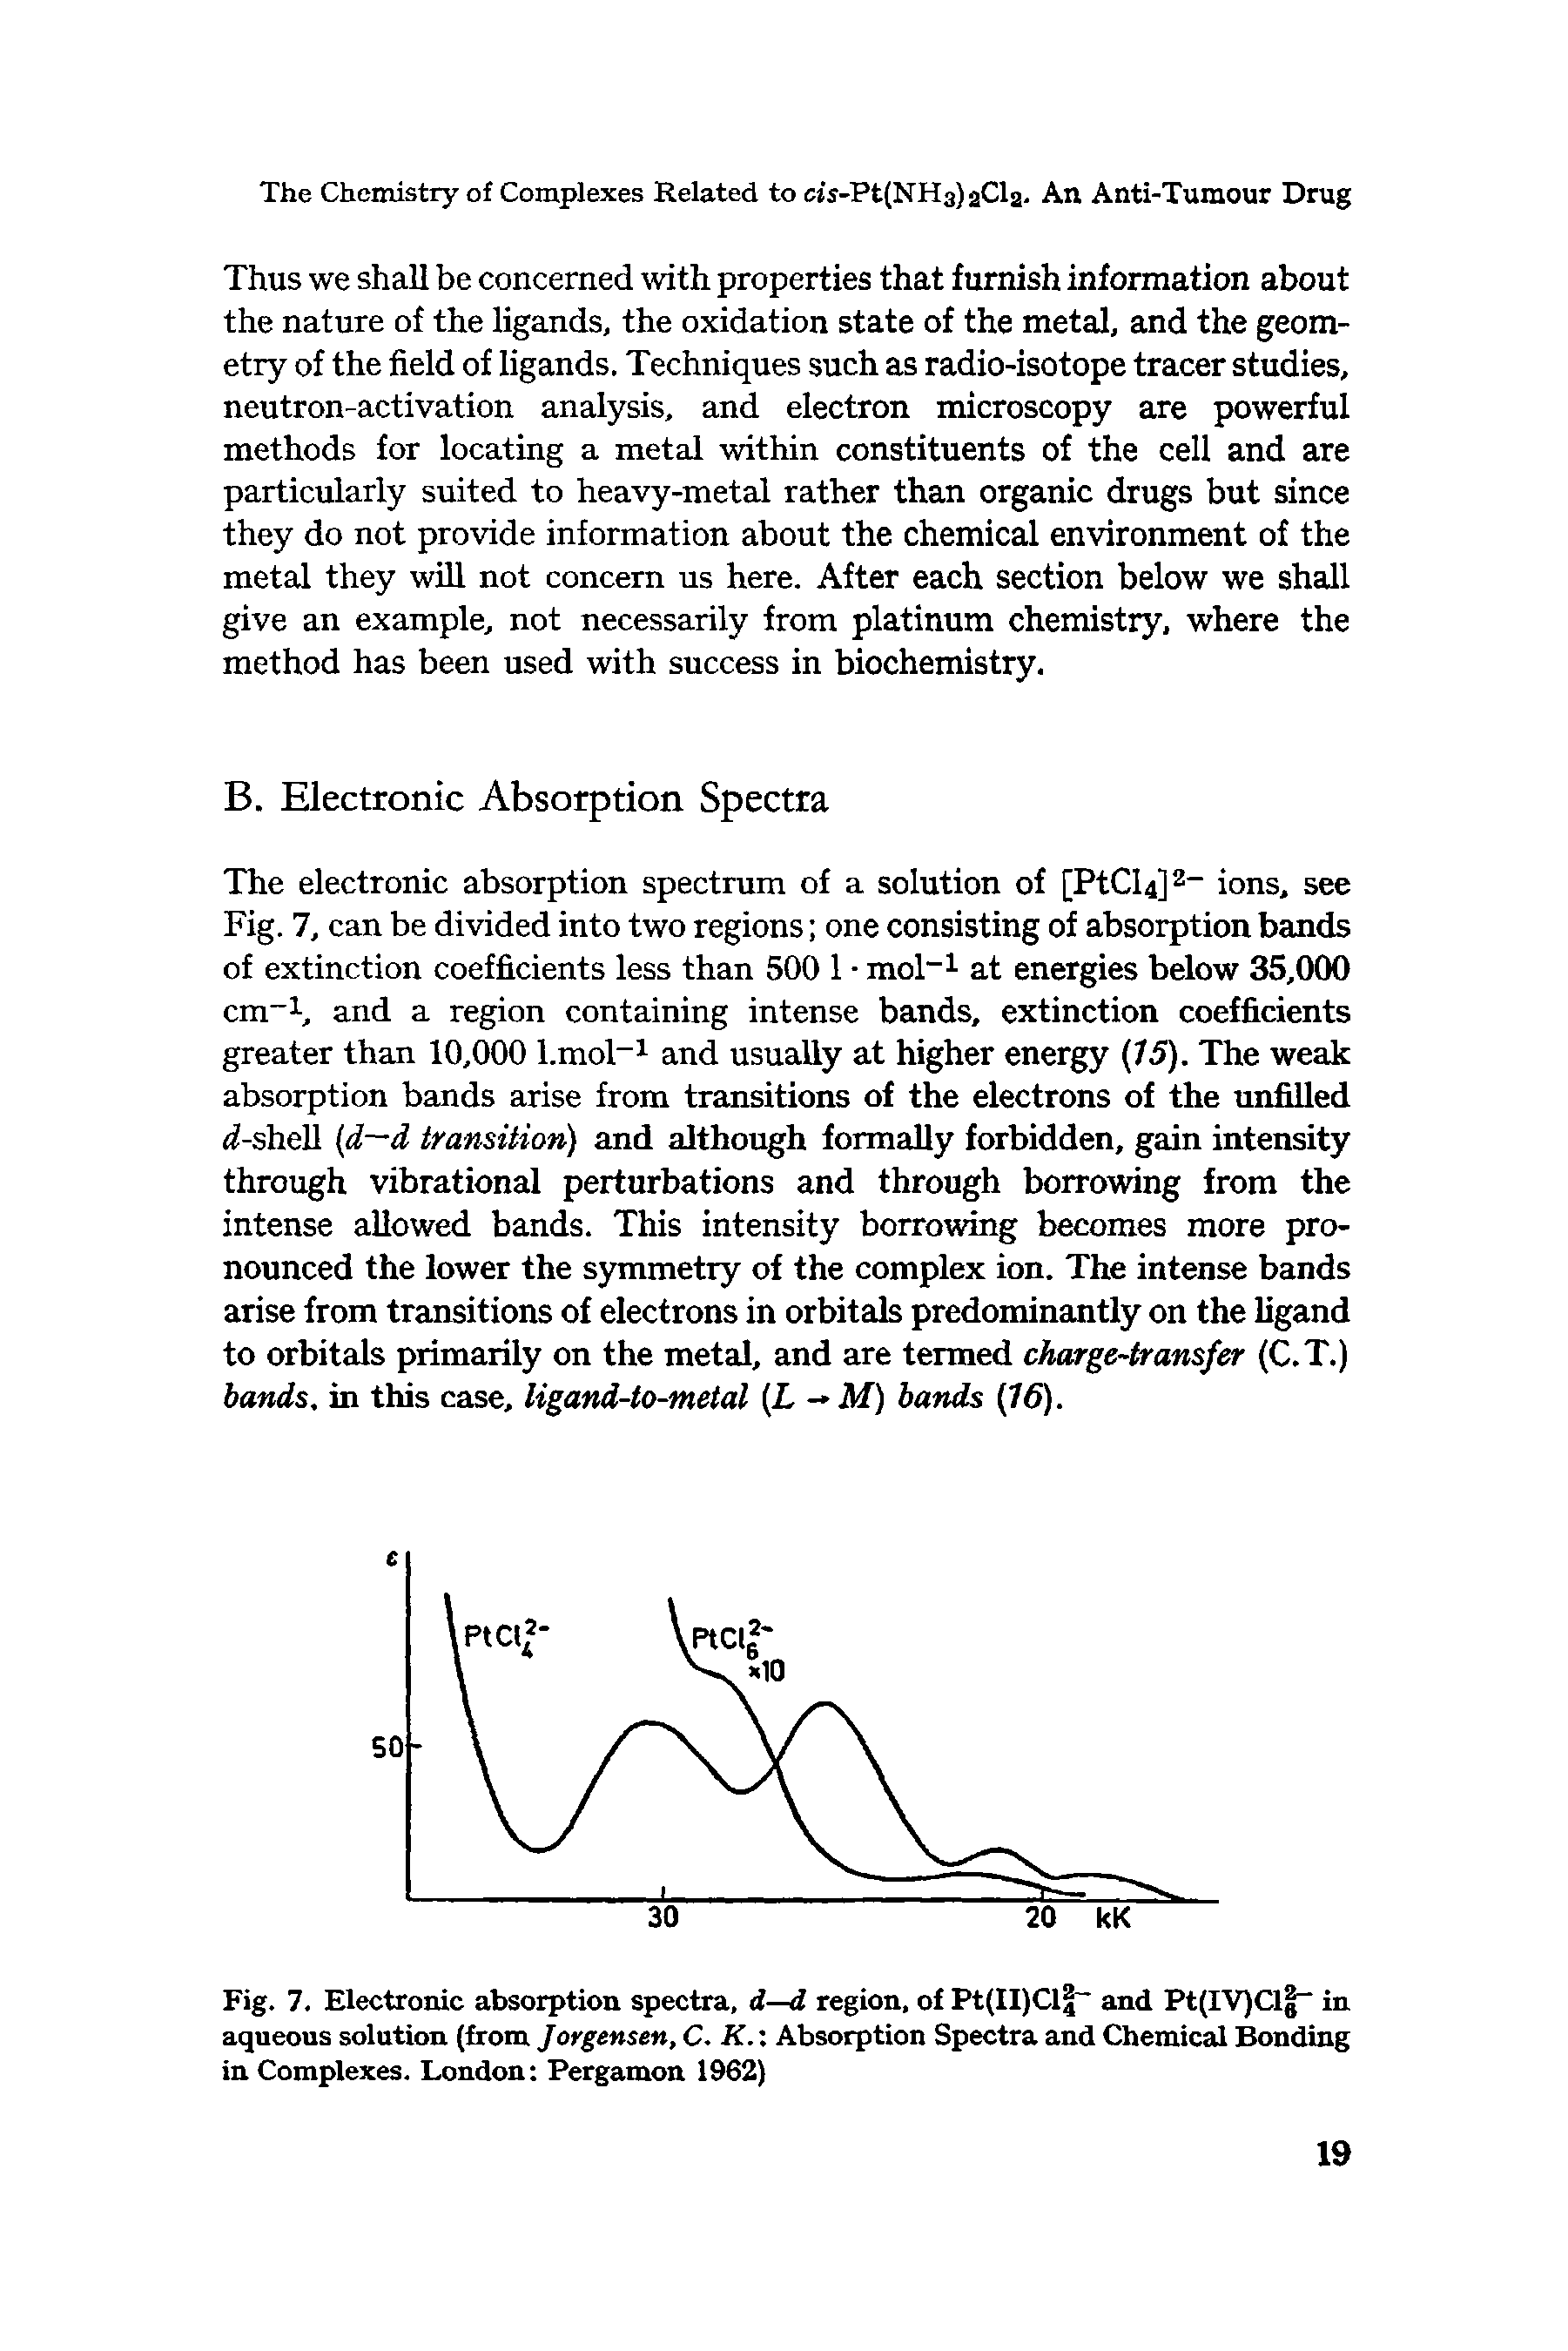 Fig. 7. Electronic absorption spectra, d—d region, of Pt(II)Cl and Pt(IV)Cl in aqueous solution (from Jorgensen, C. K.. Absorption Spectra and Chemical Bonding in Complexes. London Pergamon 1962)...